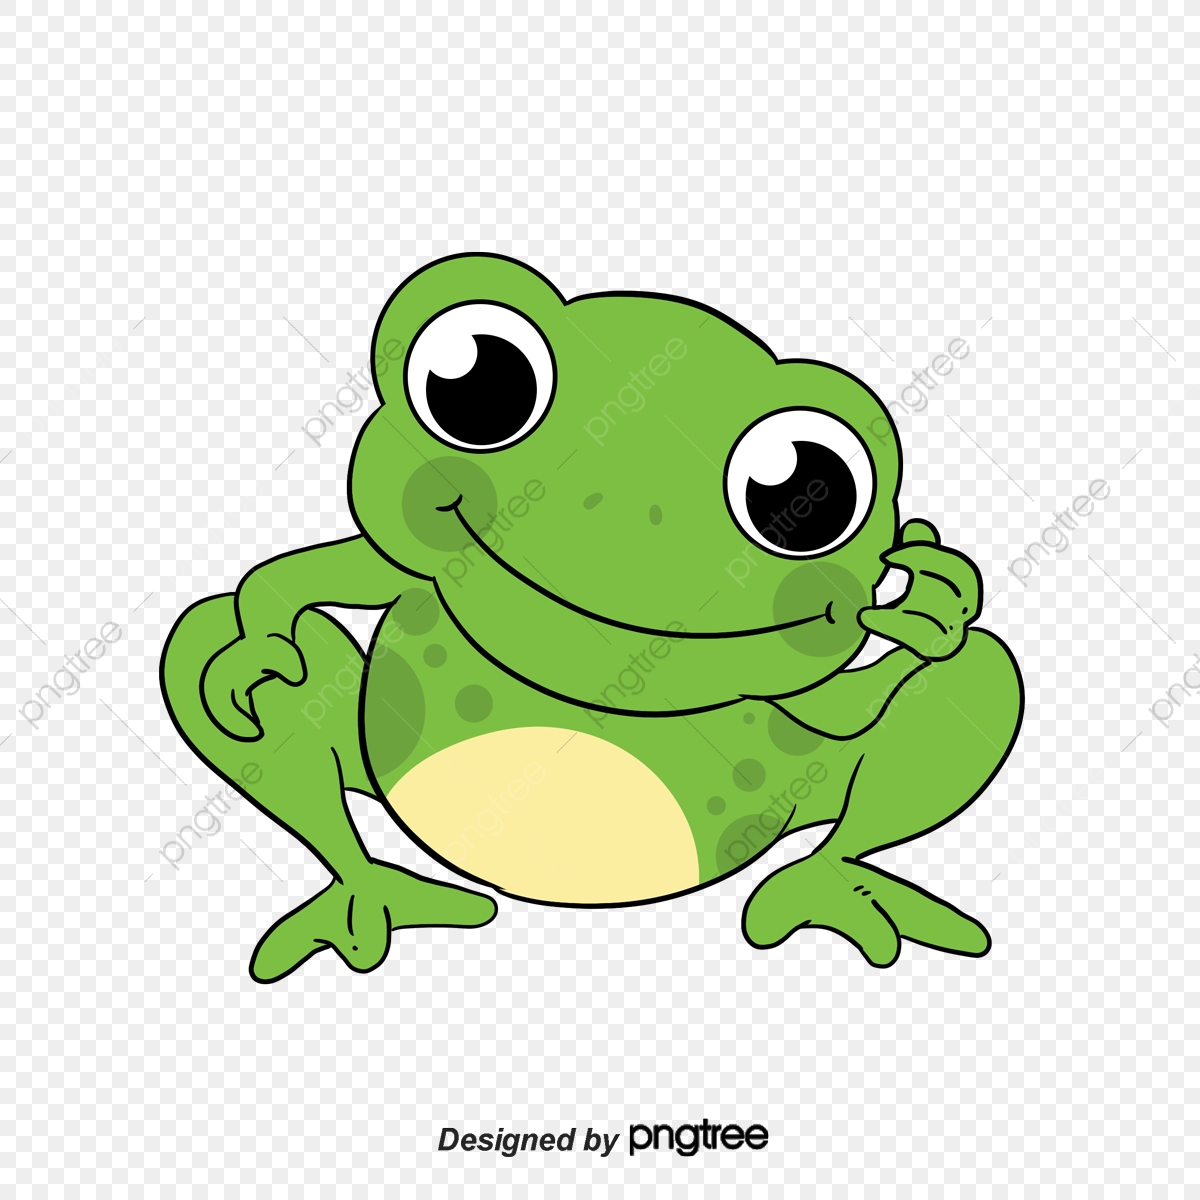 funny little green frog